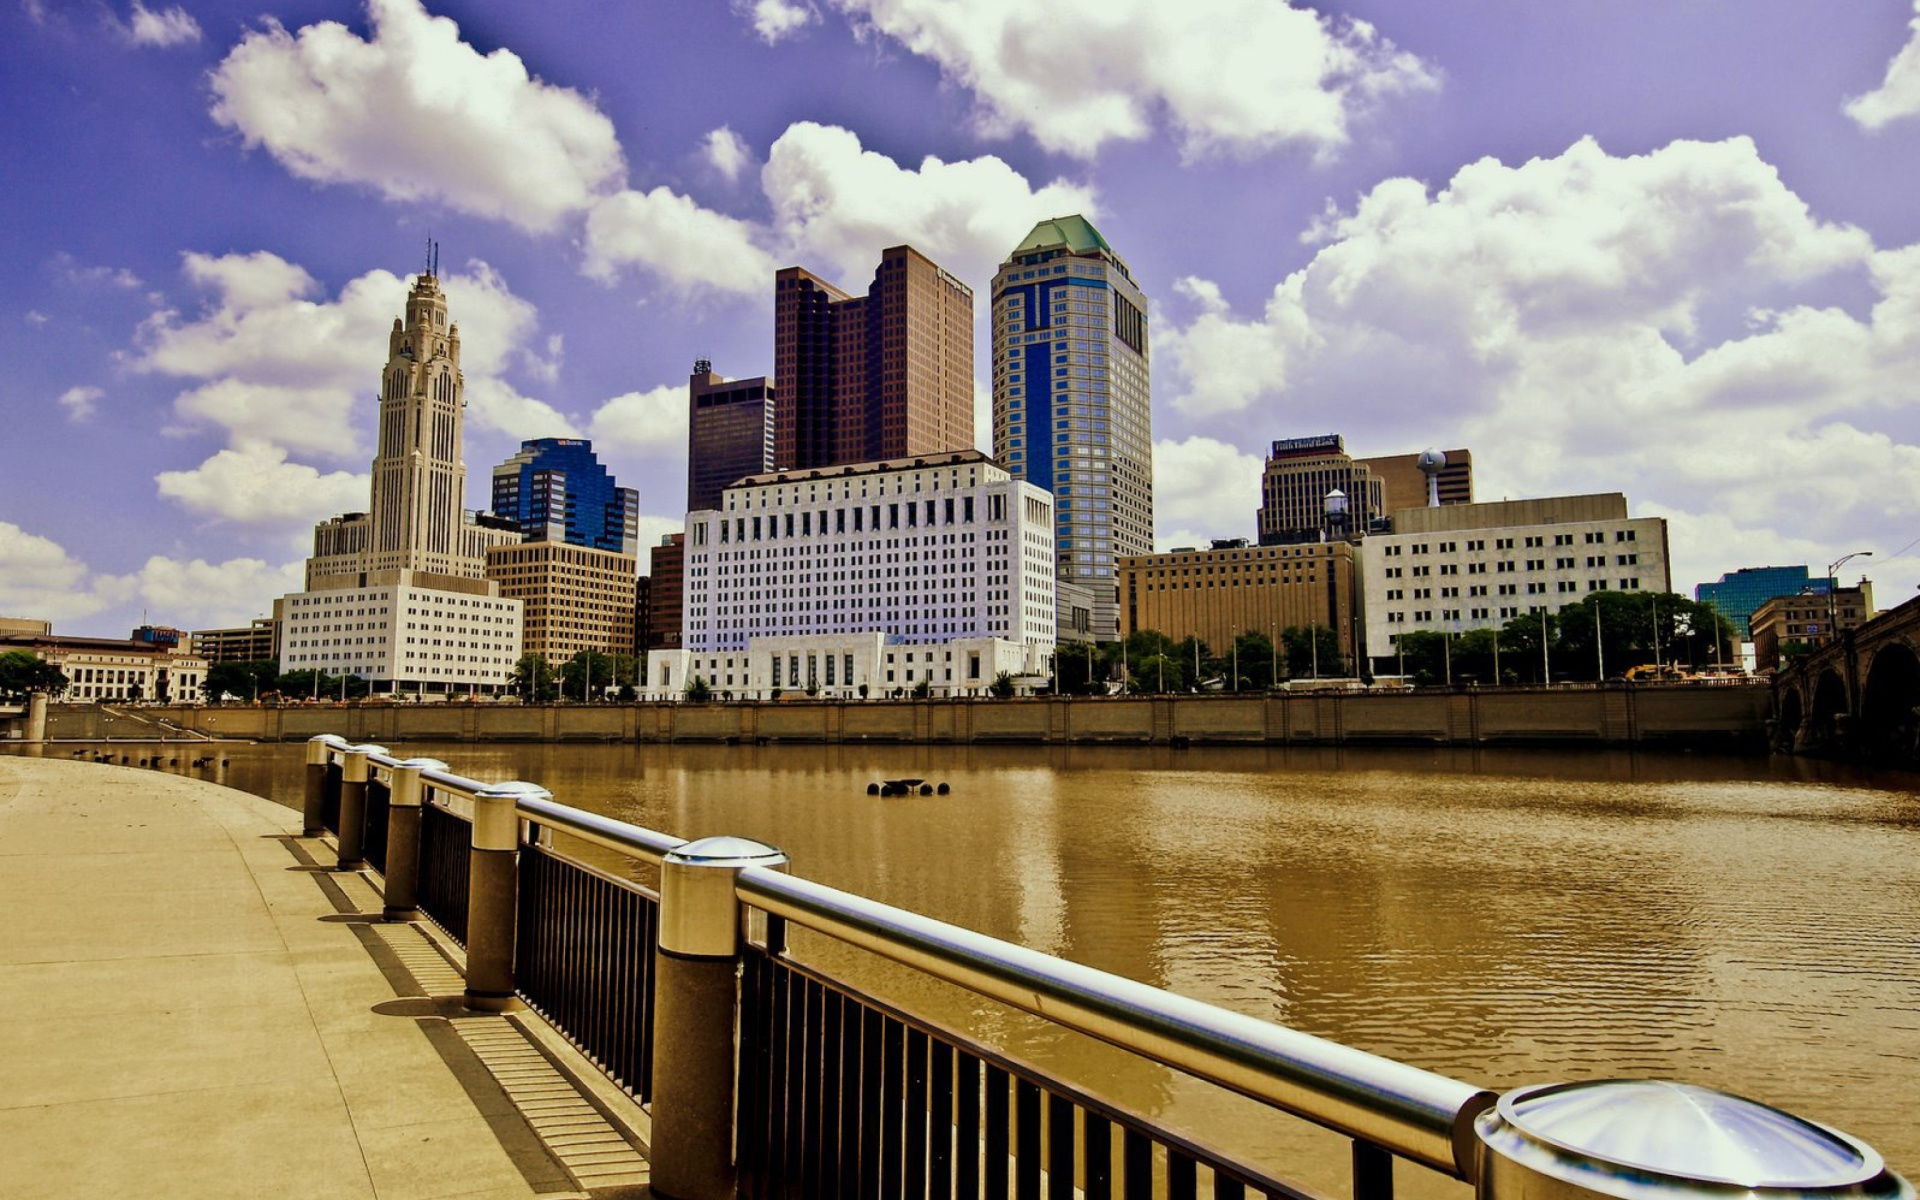 columbus ohio wallpaper - photo #6